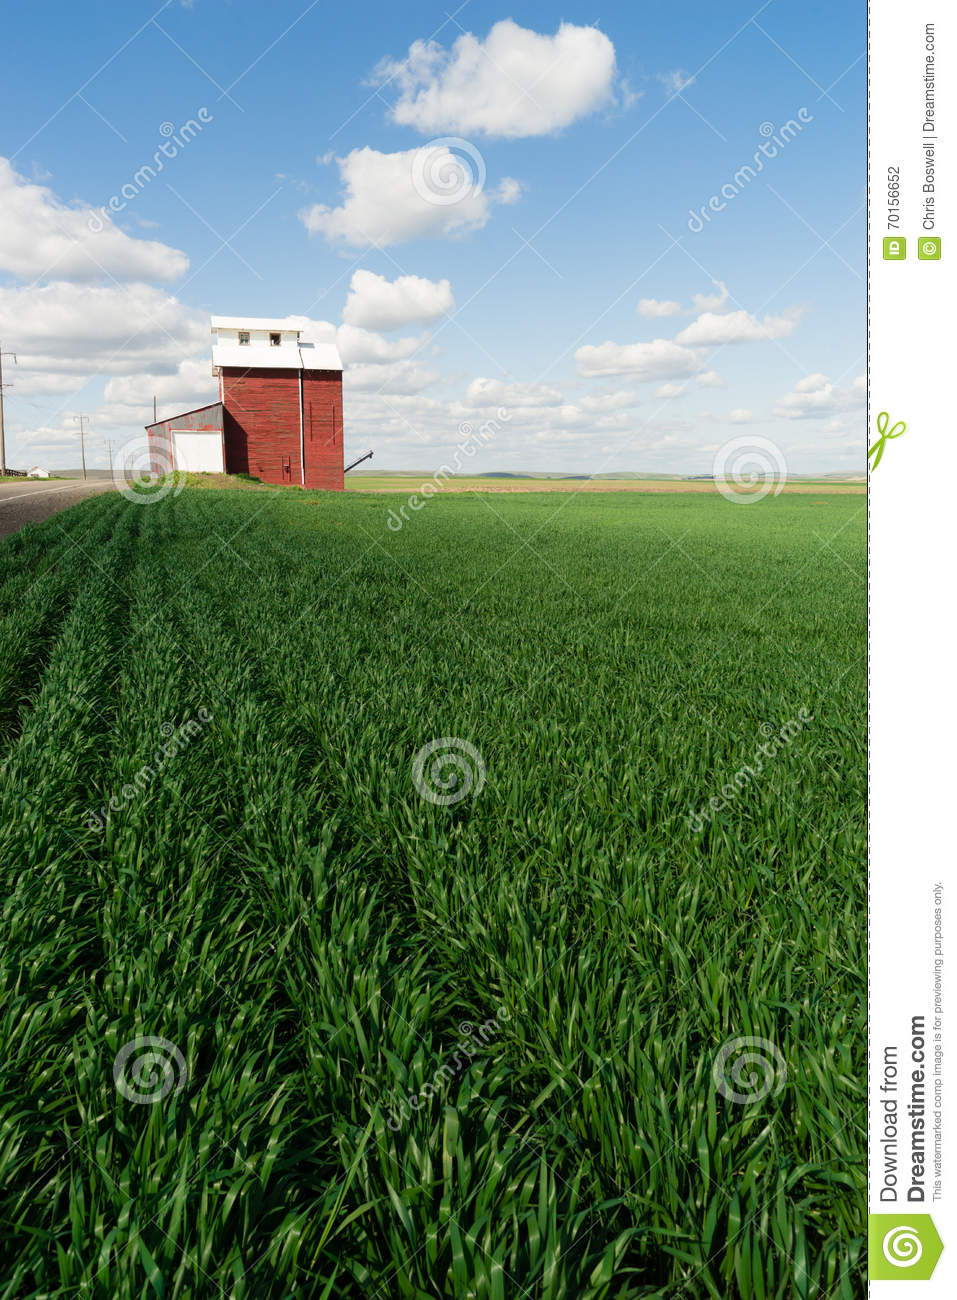 Red Grain Elevator Blue Skies Agriculture Green Crops